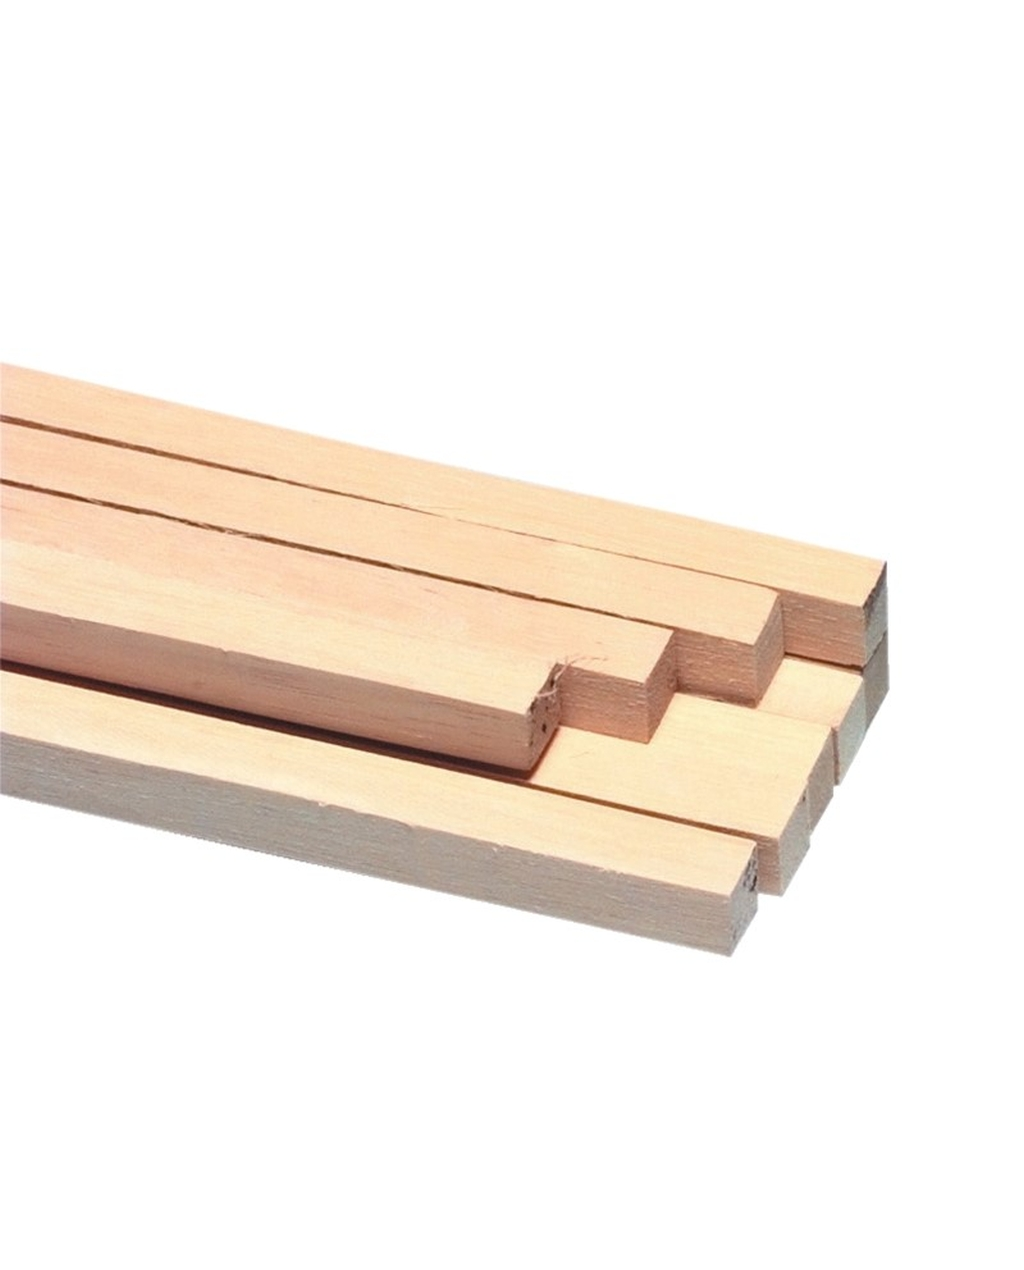 8mm Ramin Wood Sections